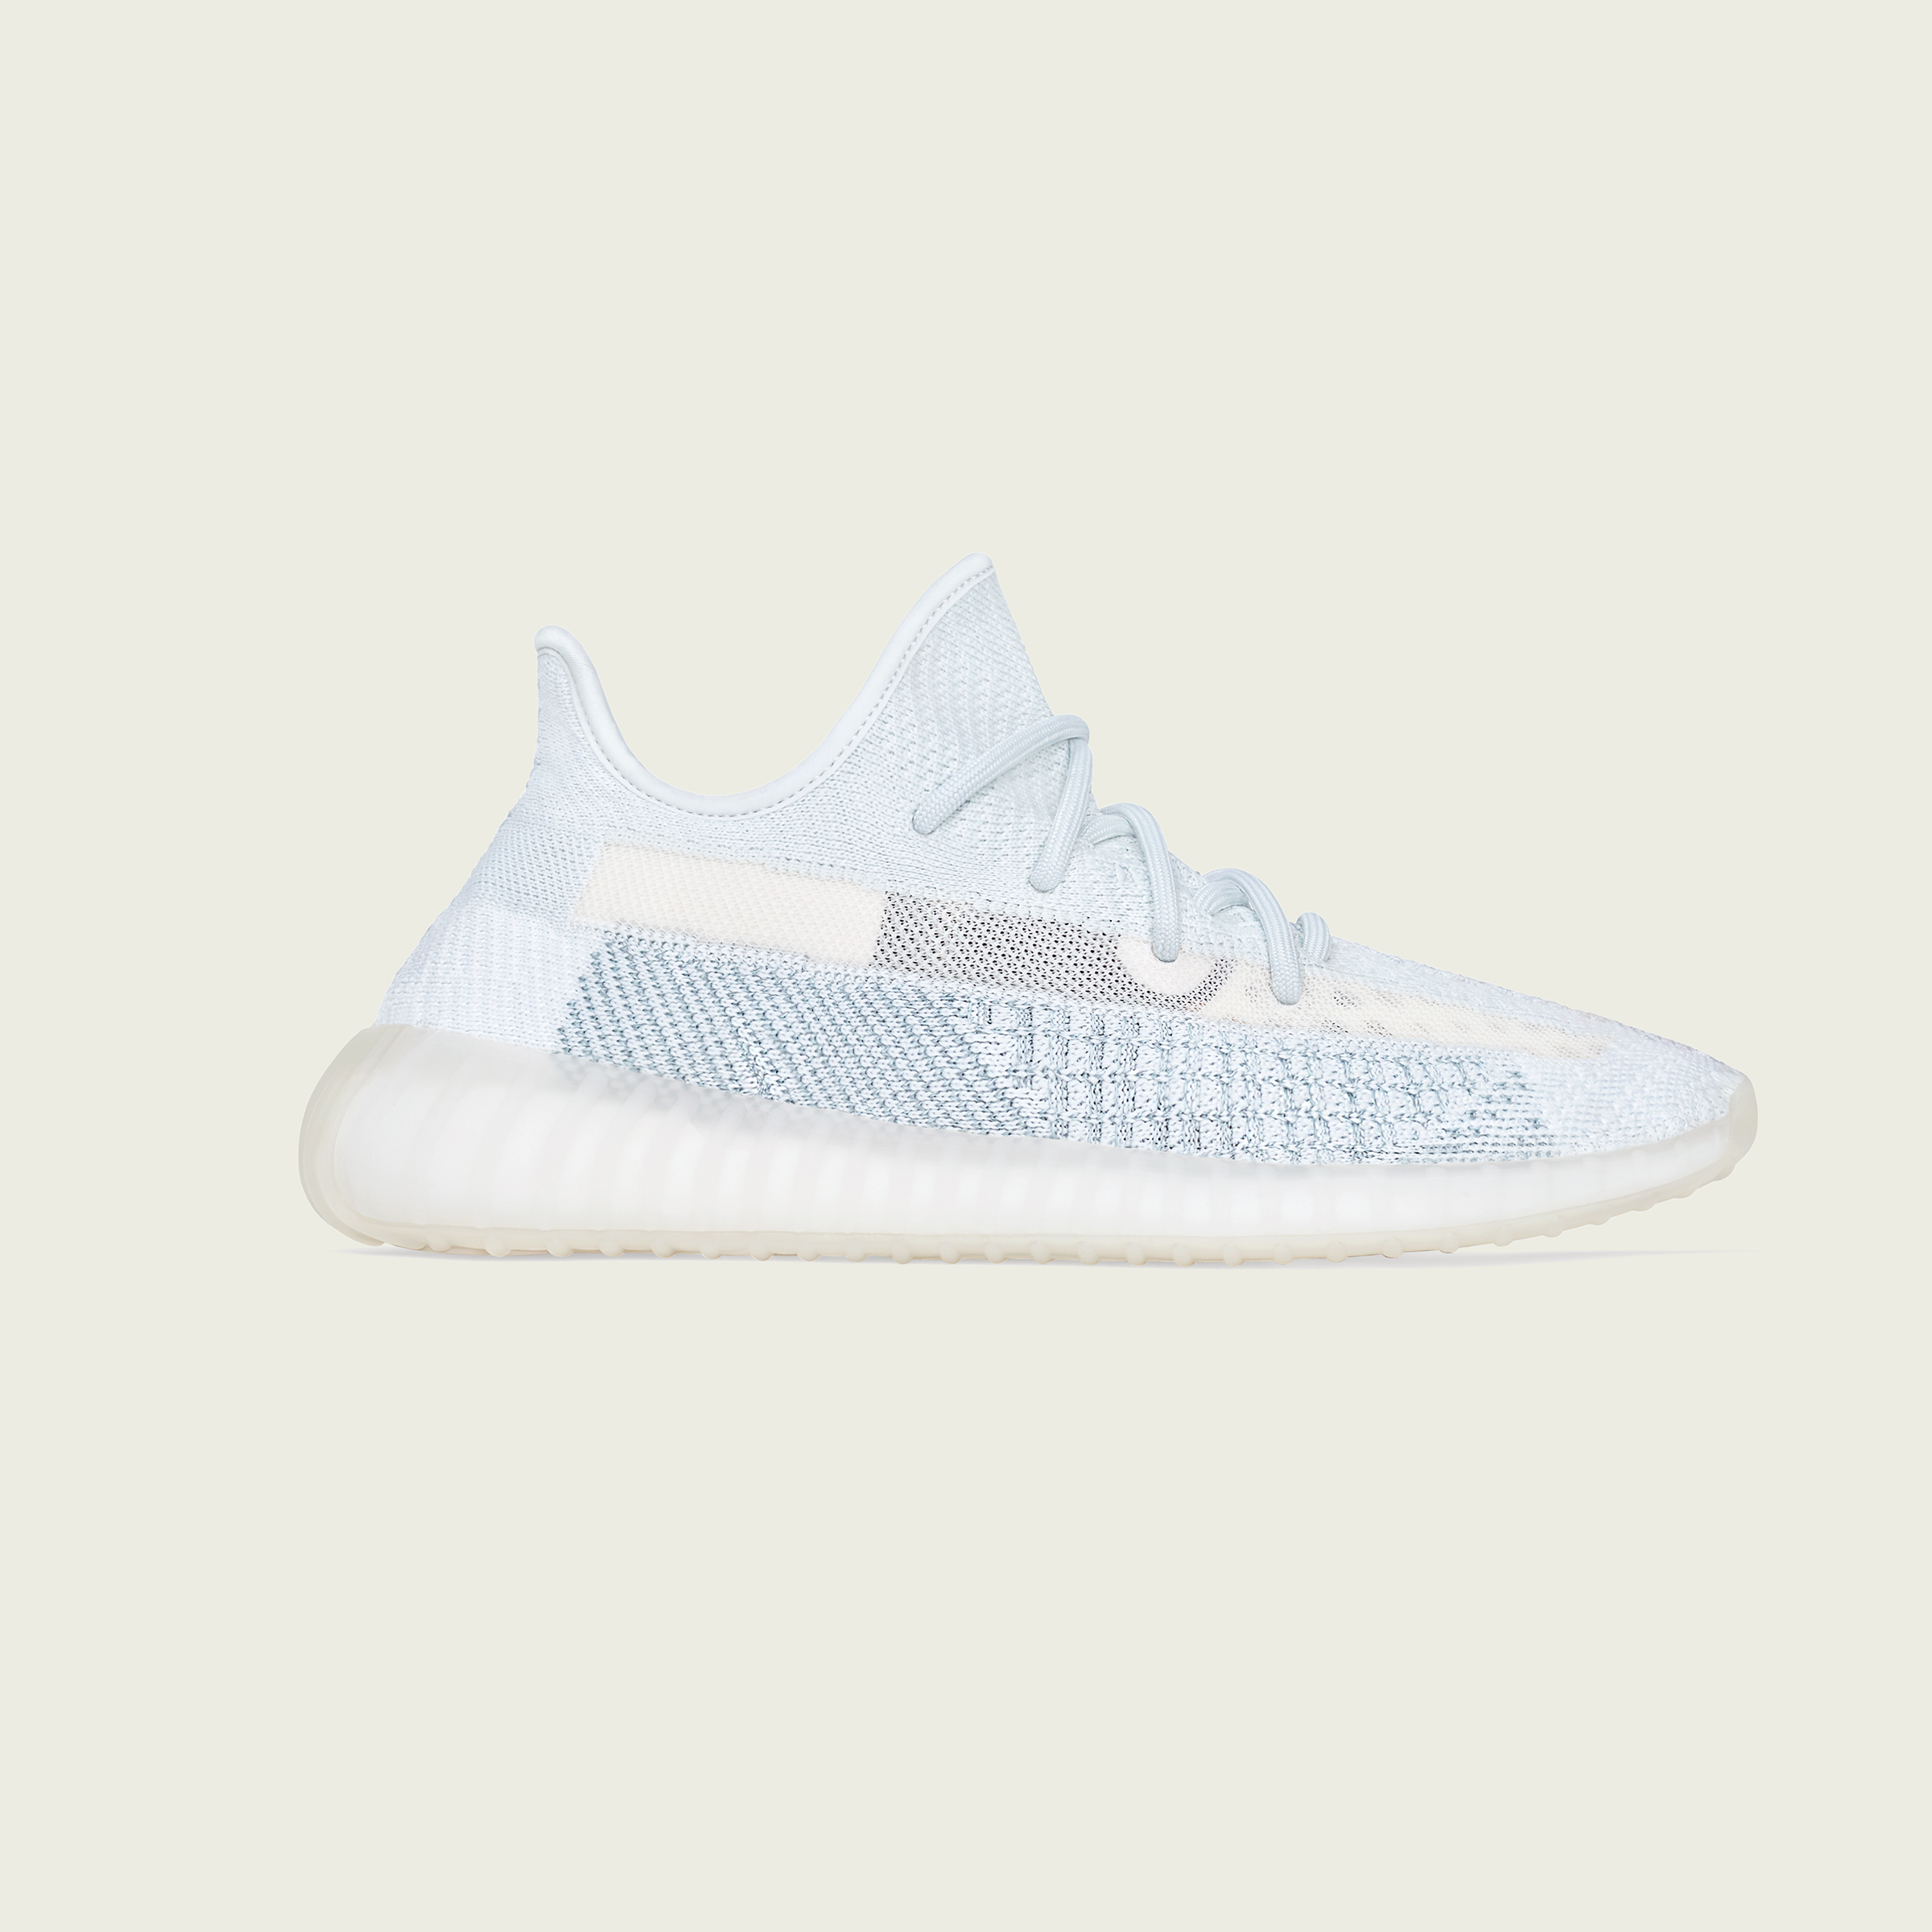 Adidas Yeezy Boost 350 V2 Cloud White Non Reflective FW3043